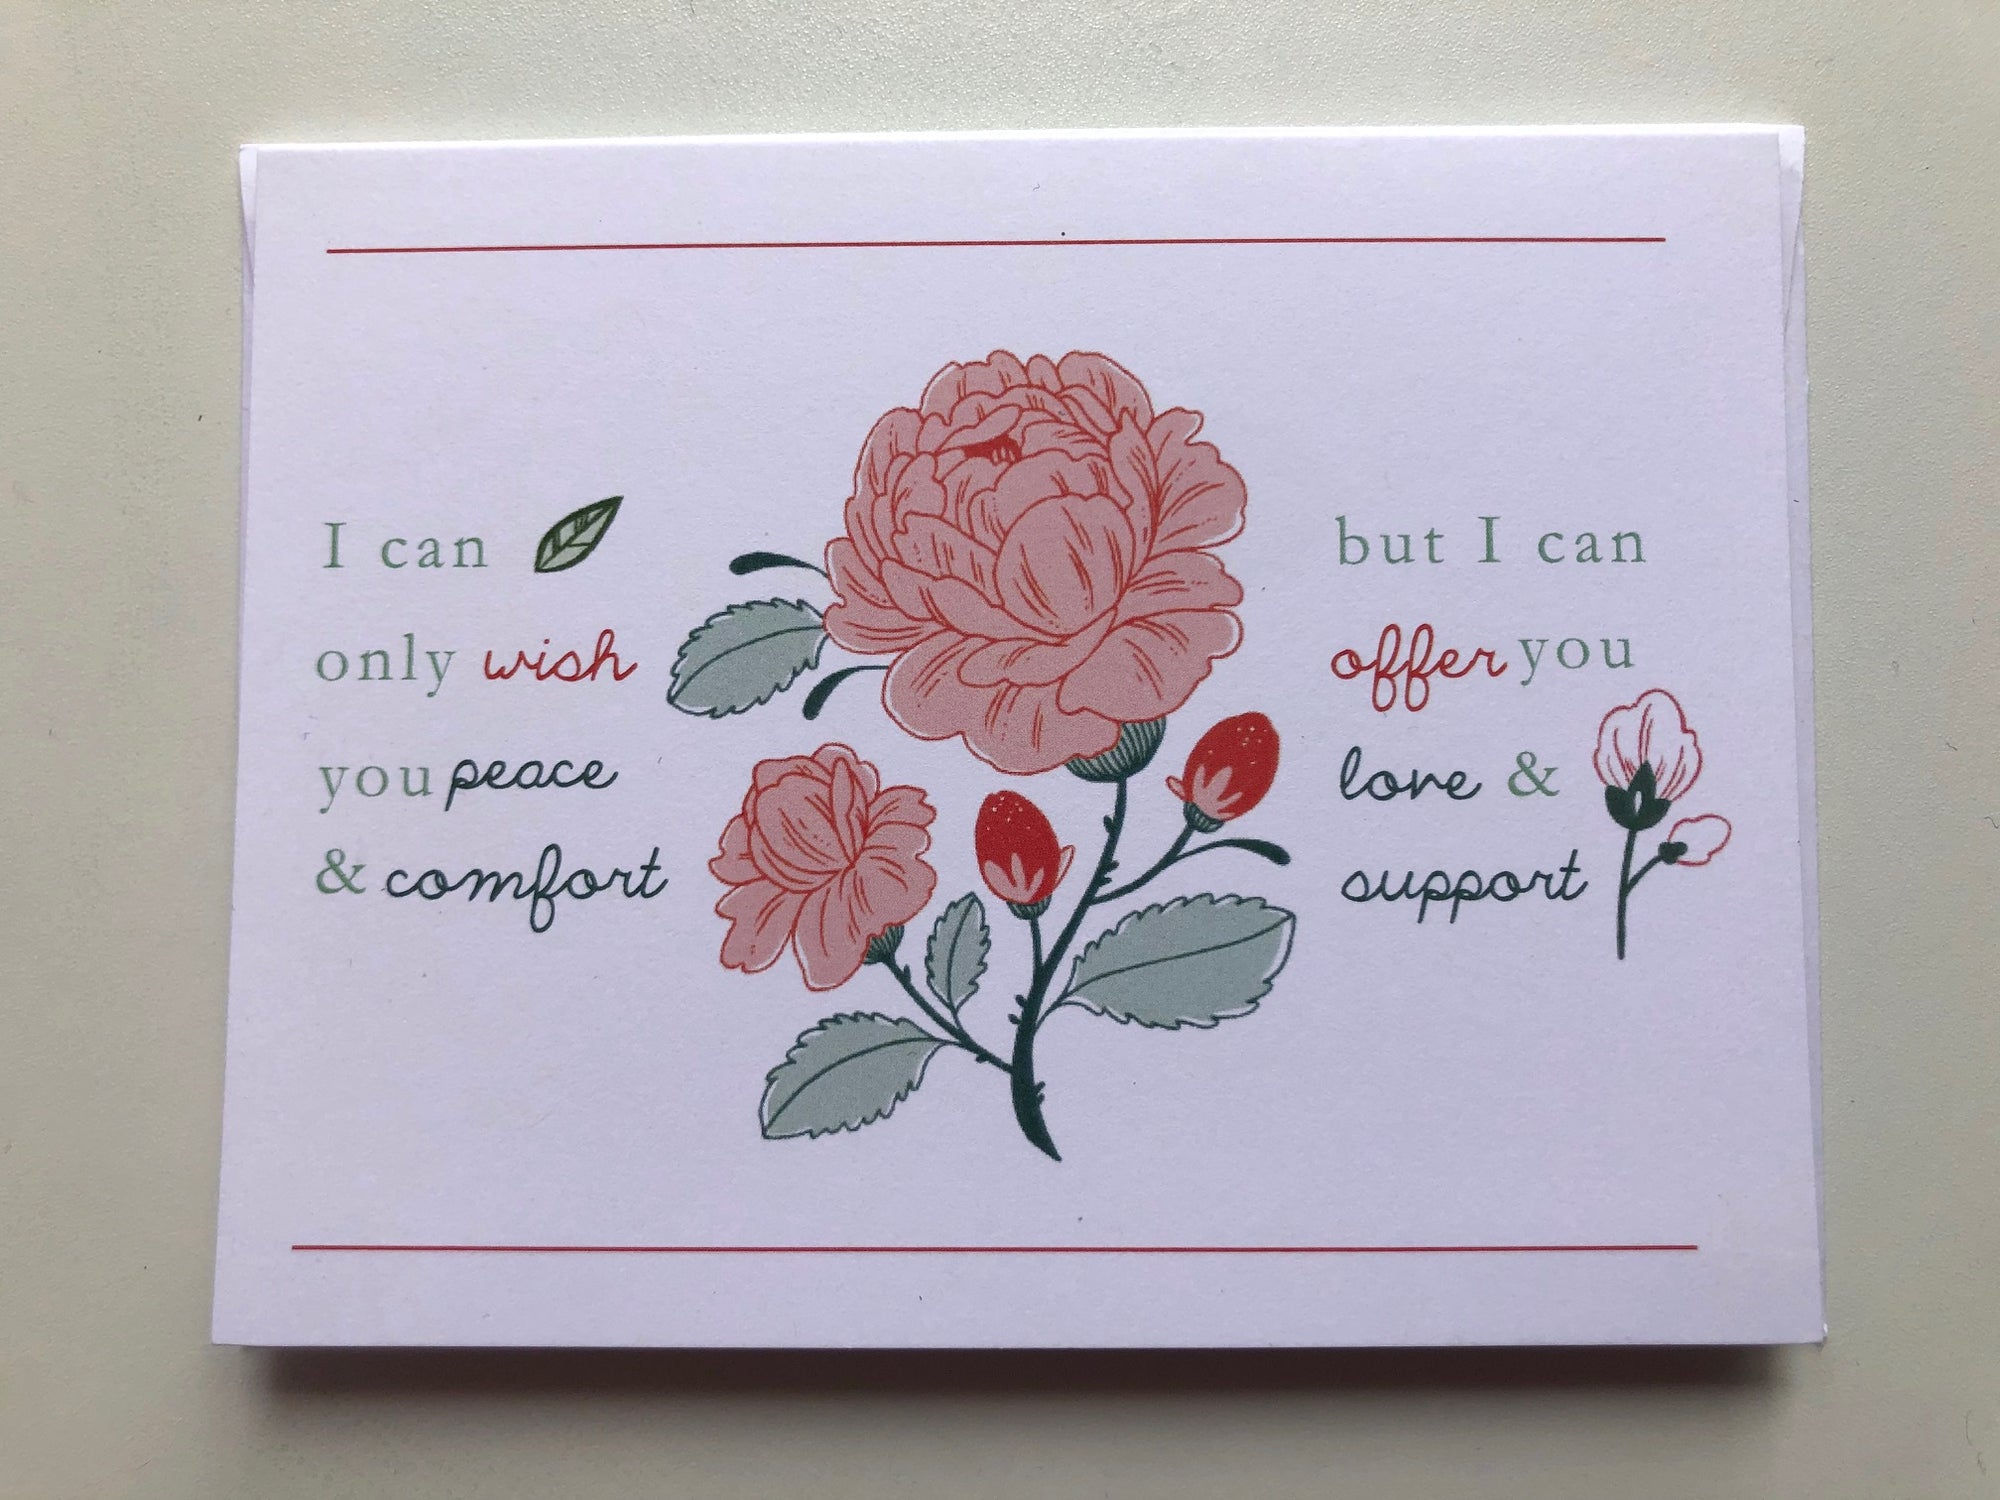 Peace & Comfort, Love & Support Cards